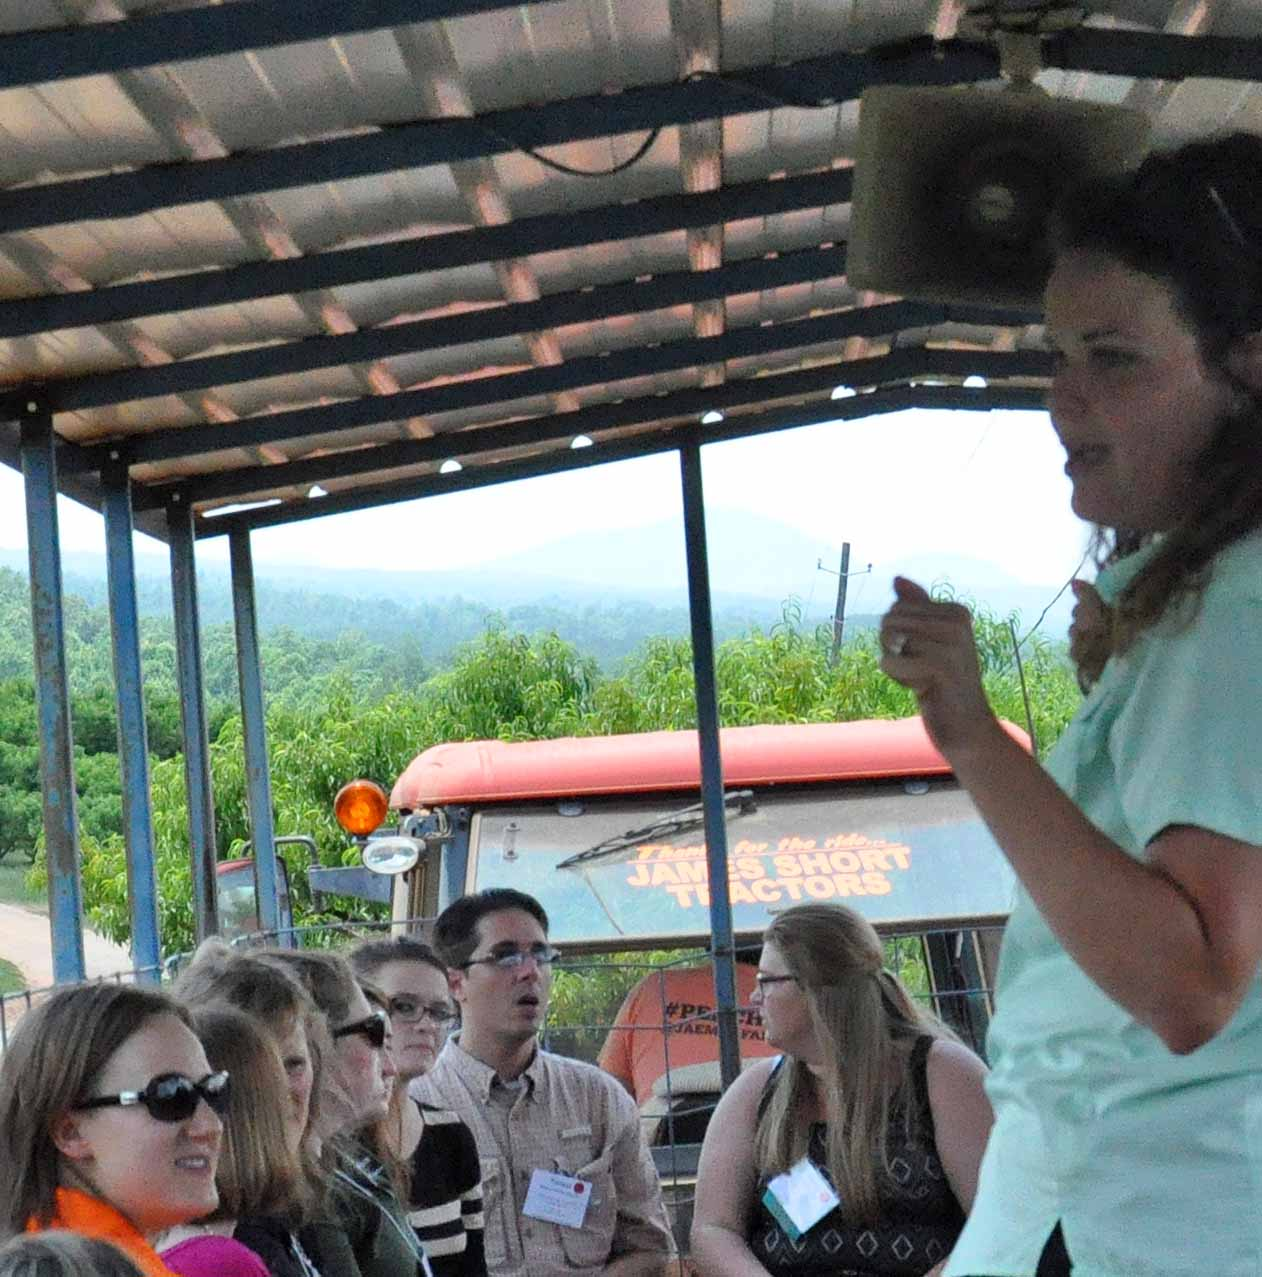 Caroline Lewallen, education coordinator for Jaemor Farms in Alto, tells NACTA convention-goers about the 750,000 customers served by the north Georgia fruit and vegetable farm.